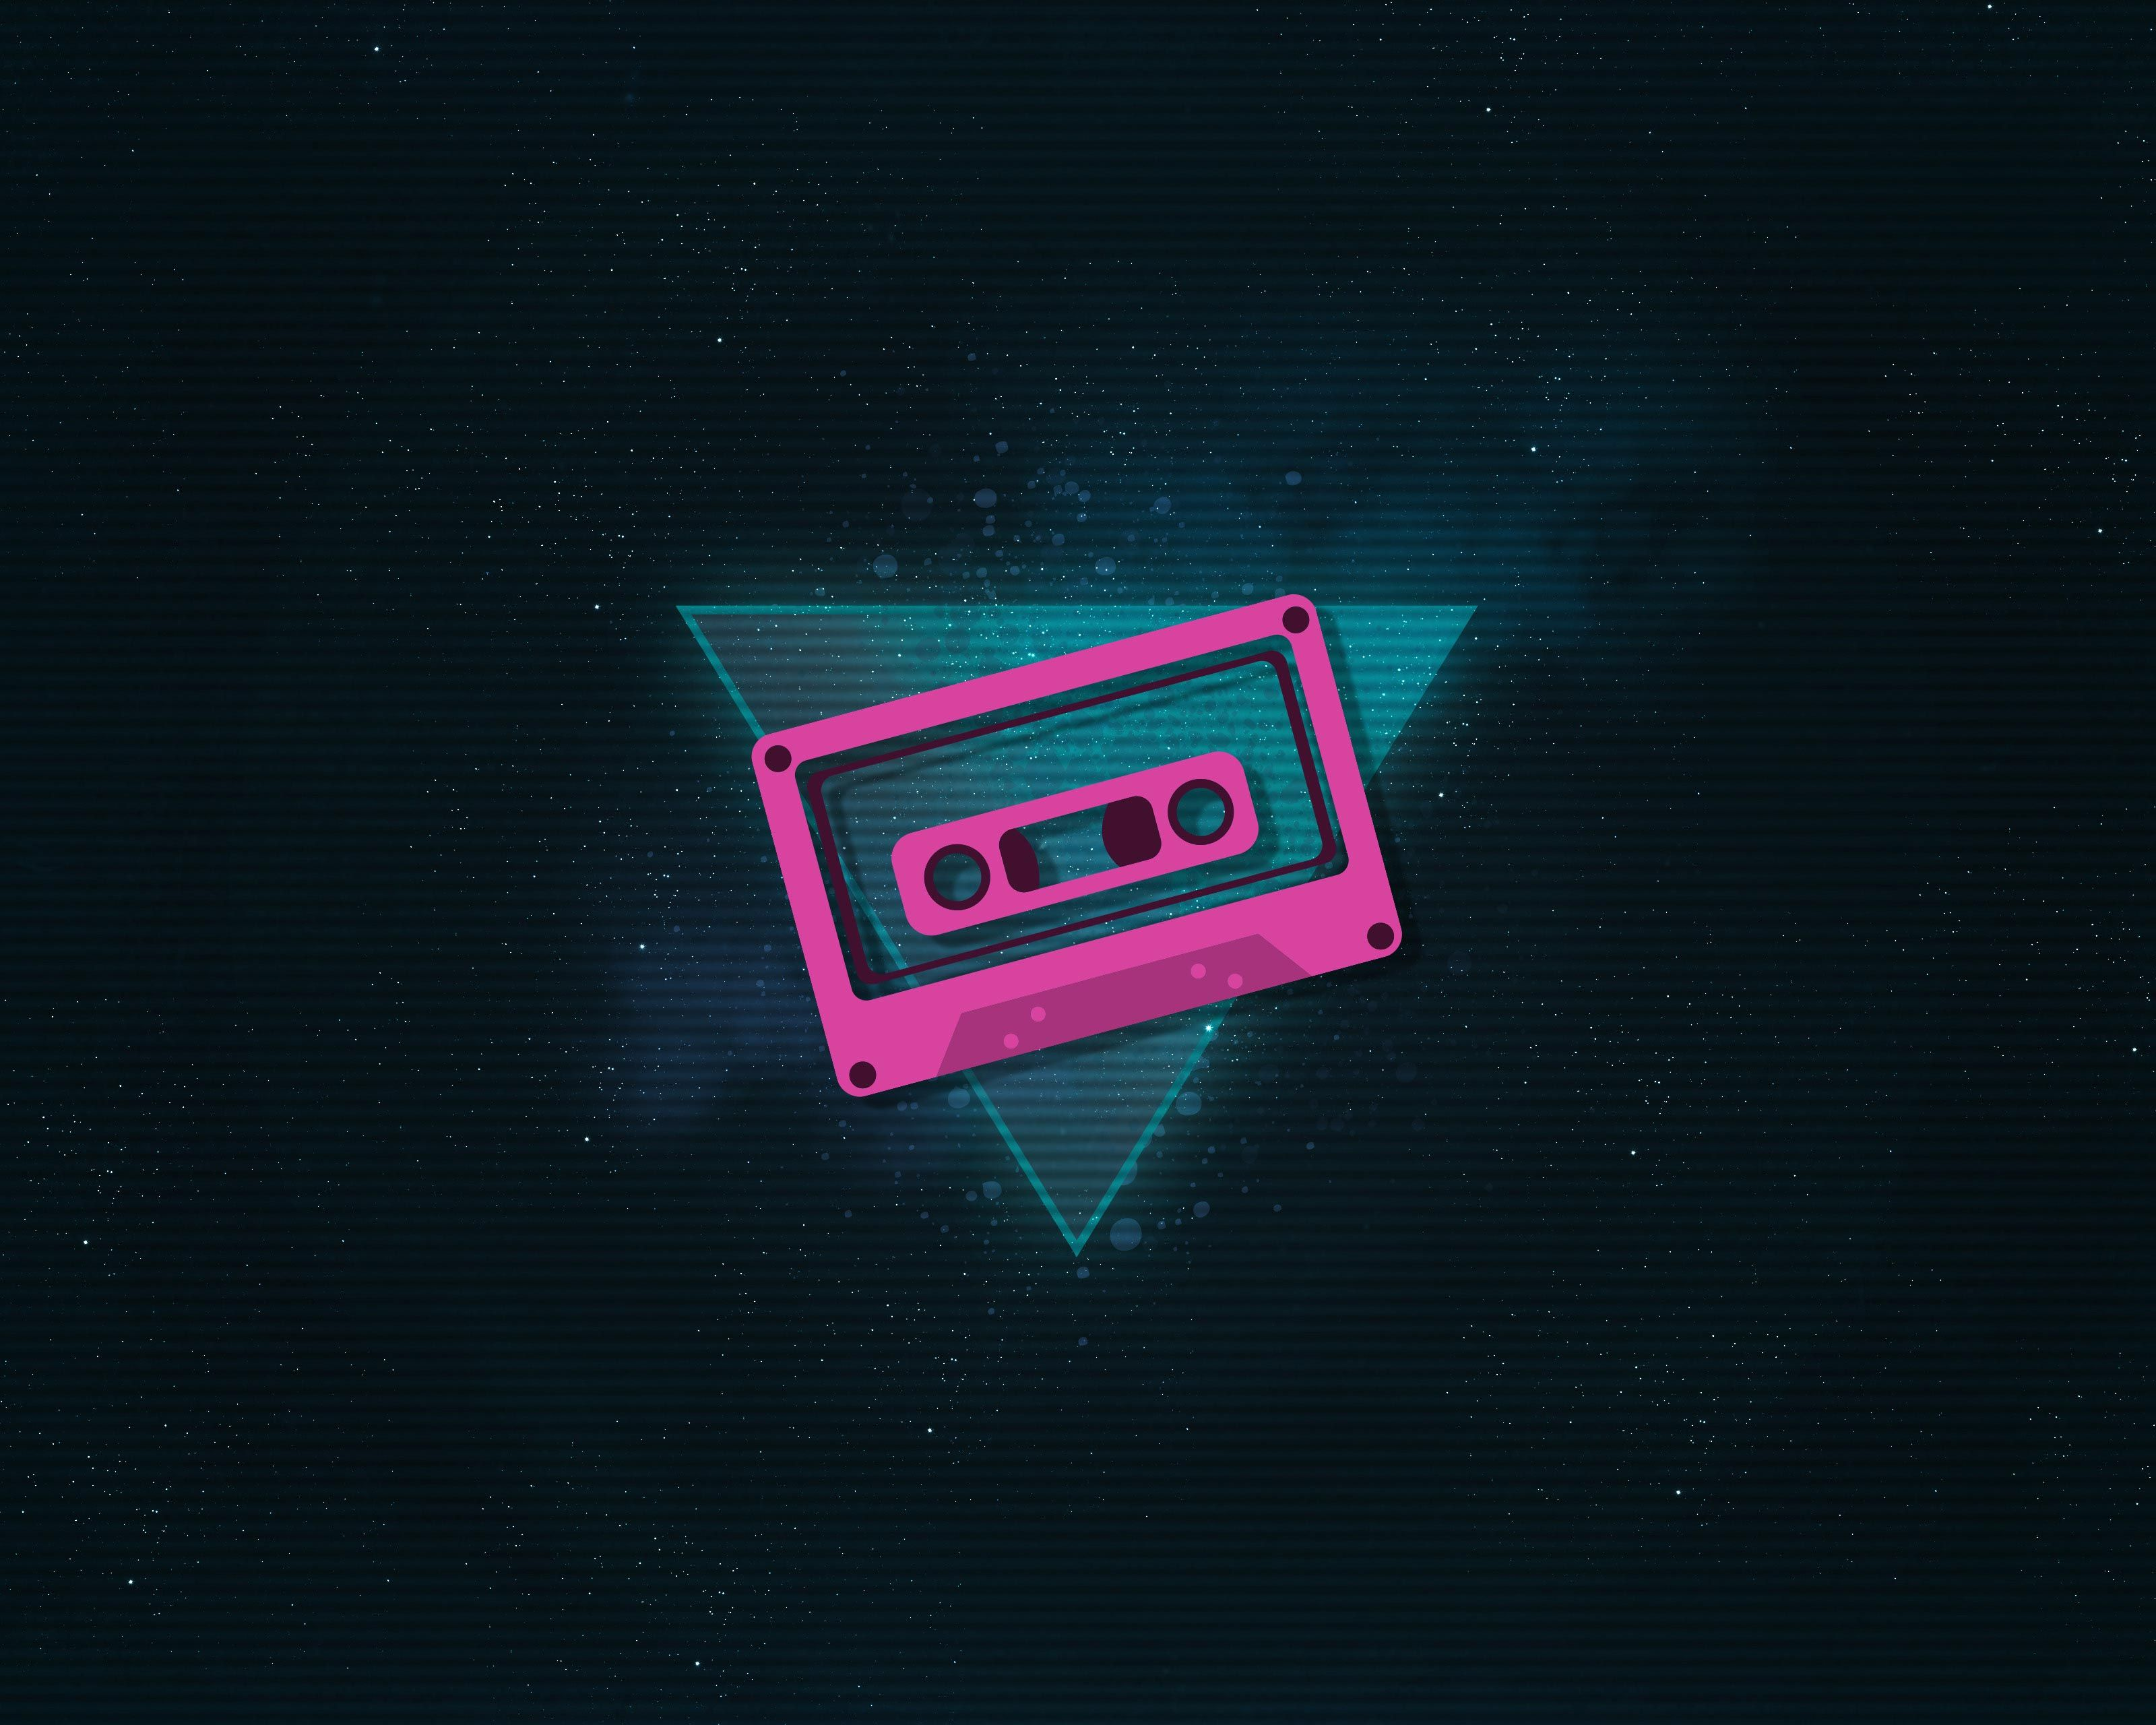 Hd Wallpaper App For Android Rad Pack 80 S Themed Hd Wallpapers Nate Wren Graphic